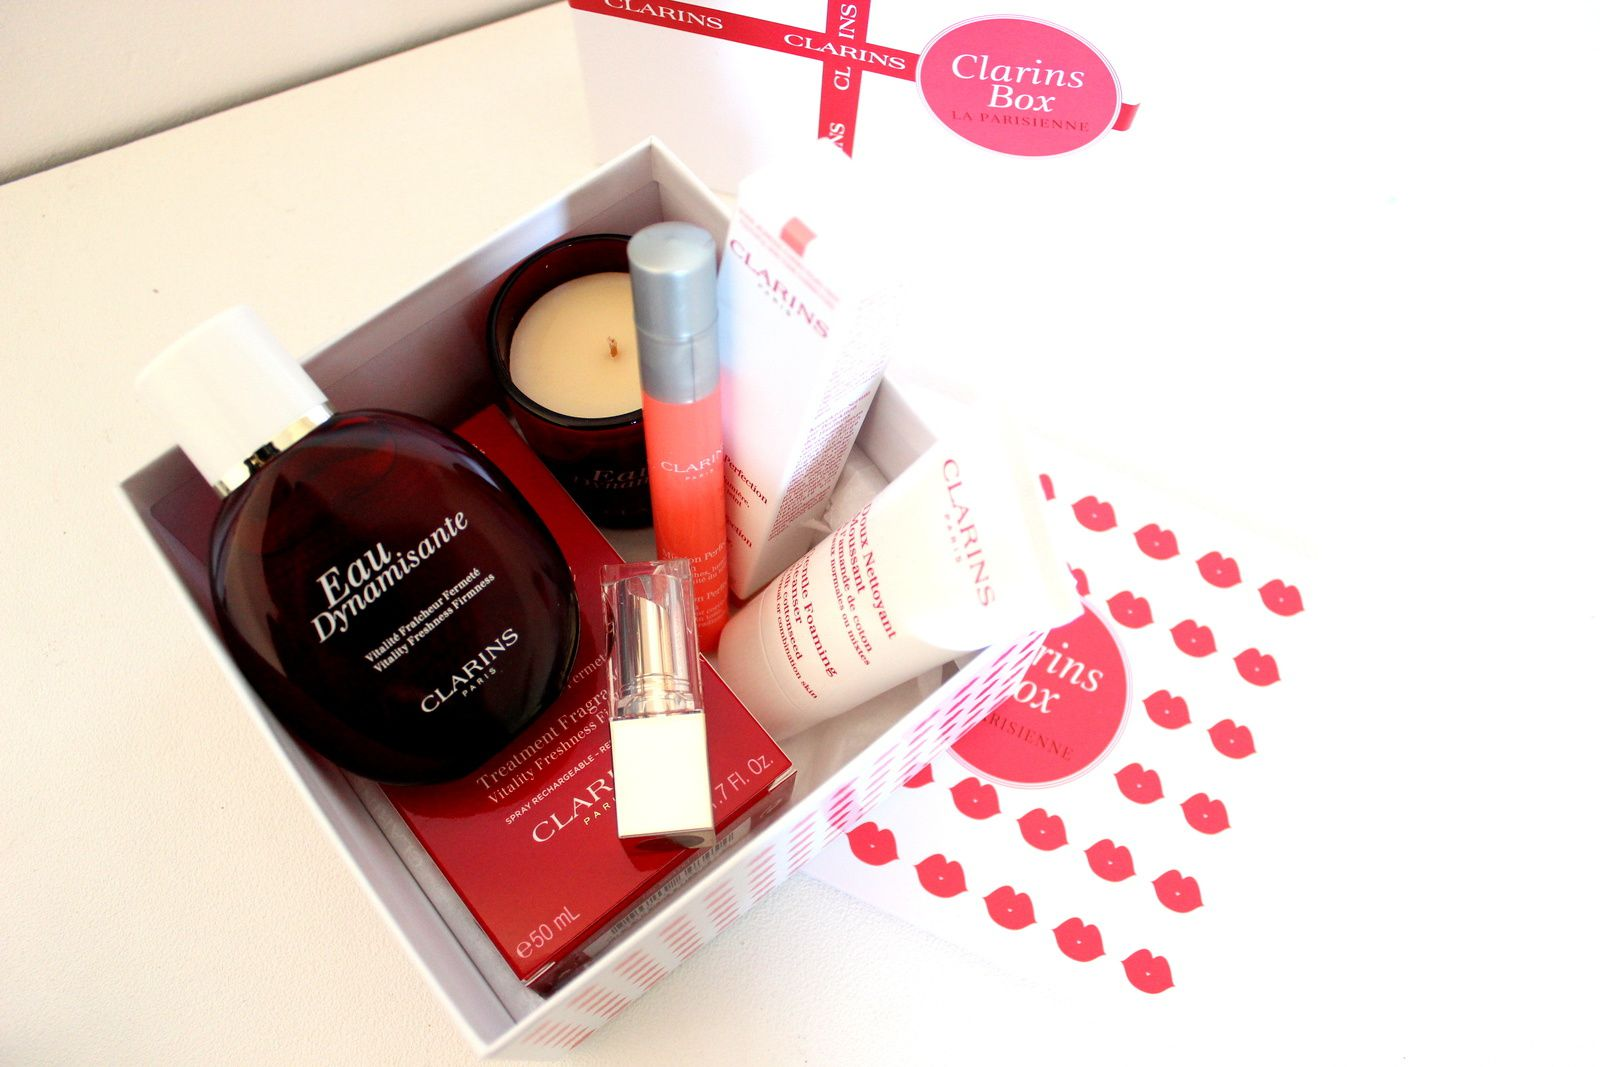 La Parisienne, la box by Clarins